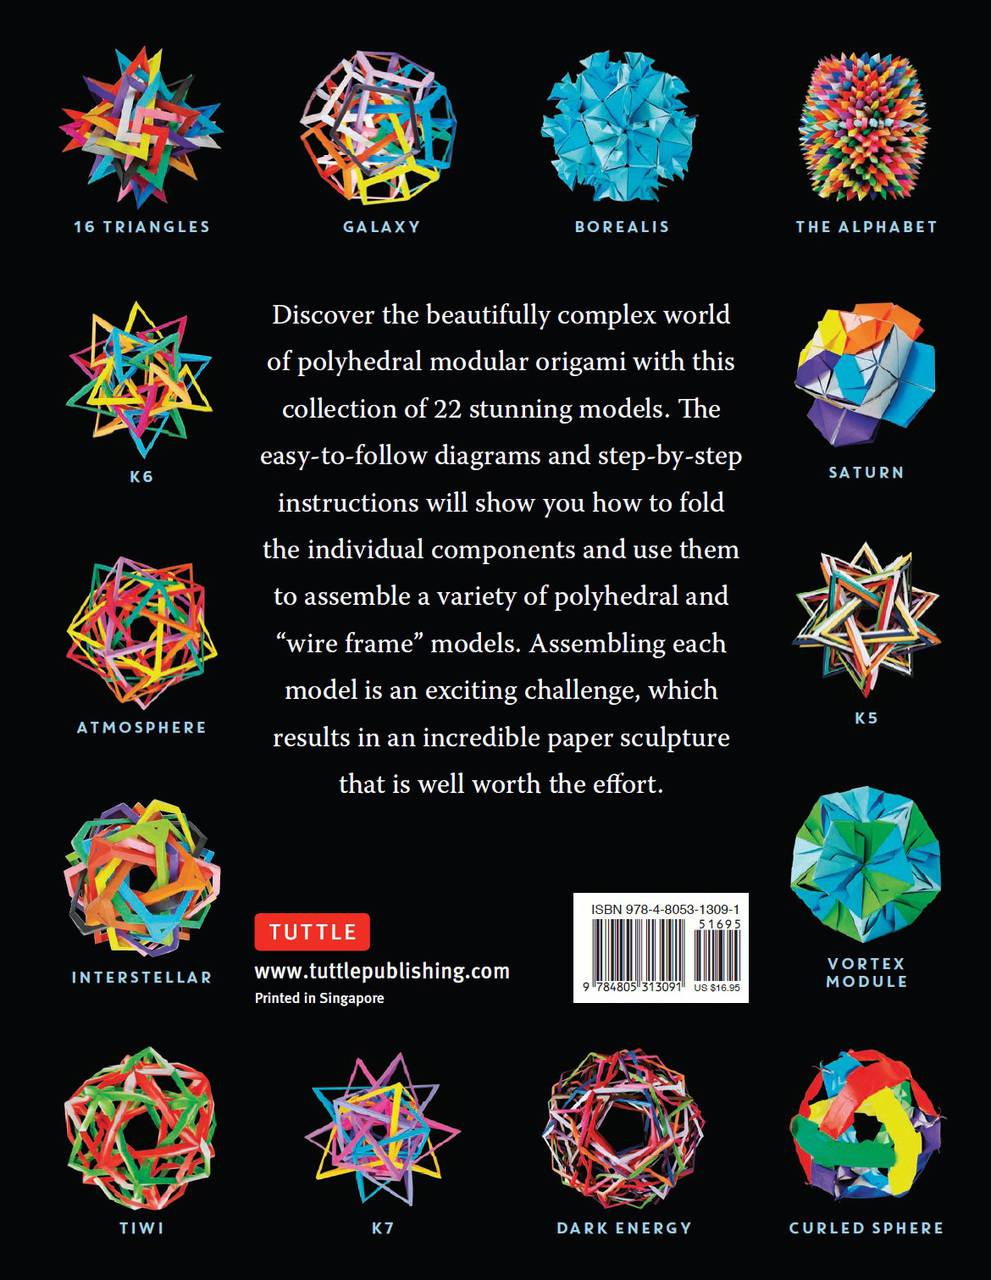 Mind Blowing Modular Origami The Art Of Polyhedral Paper Folding By Complex Diagrams Description